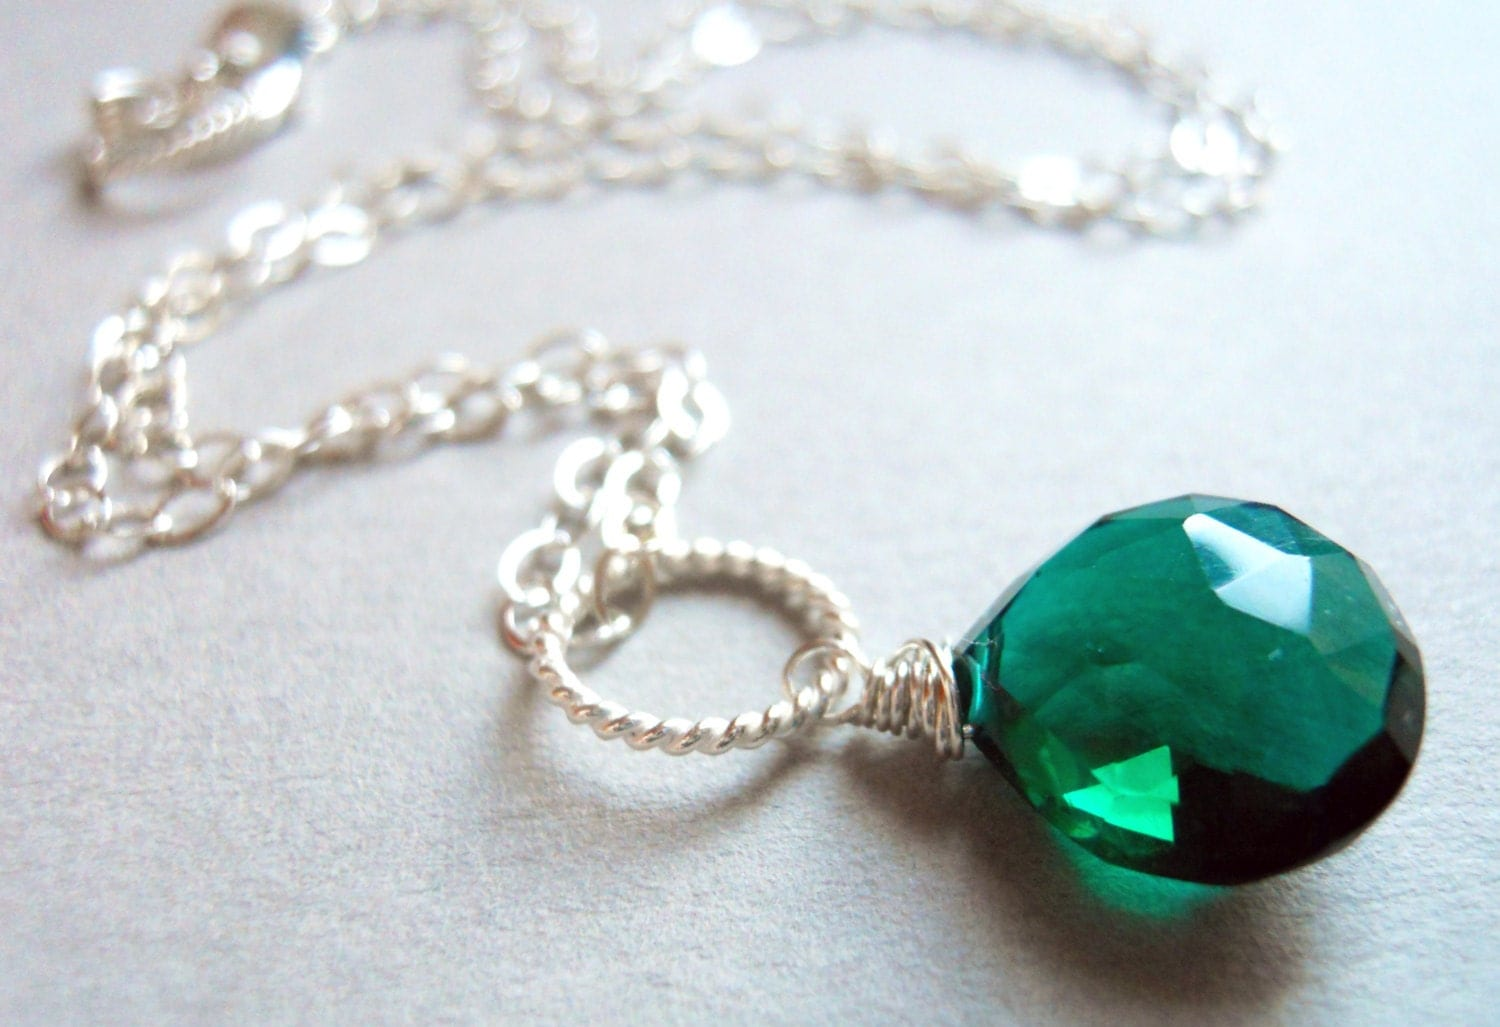 Dark Emerald Green Quartz Drop Necklace - Color of the Year - $35.00 USD